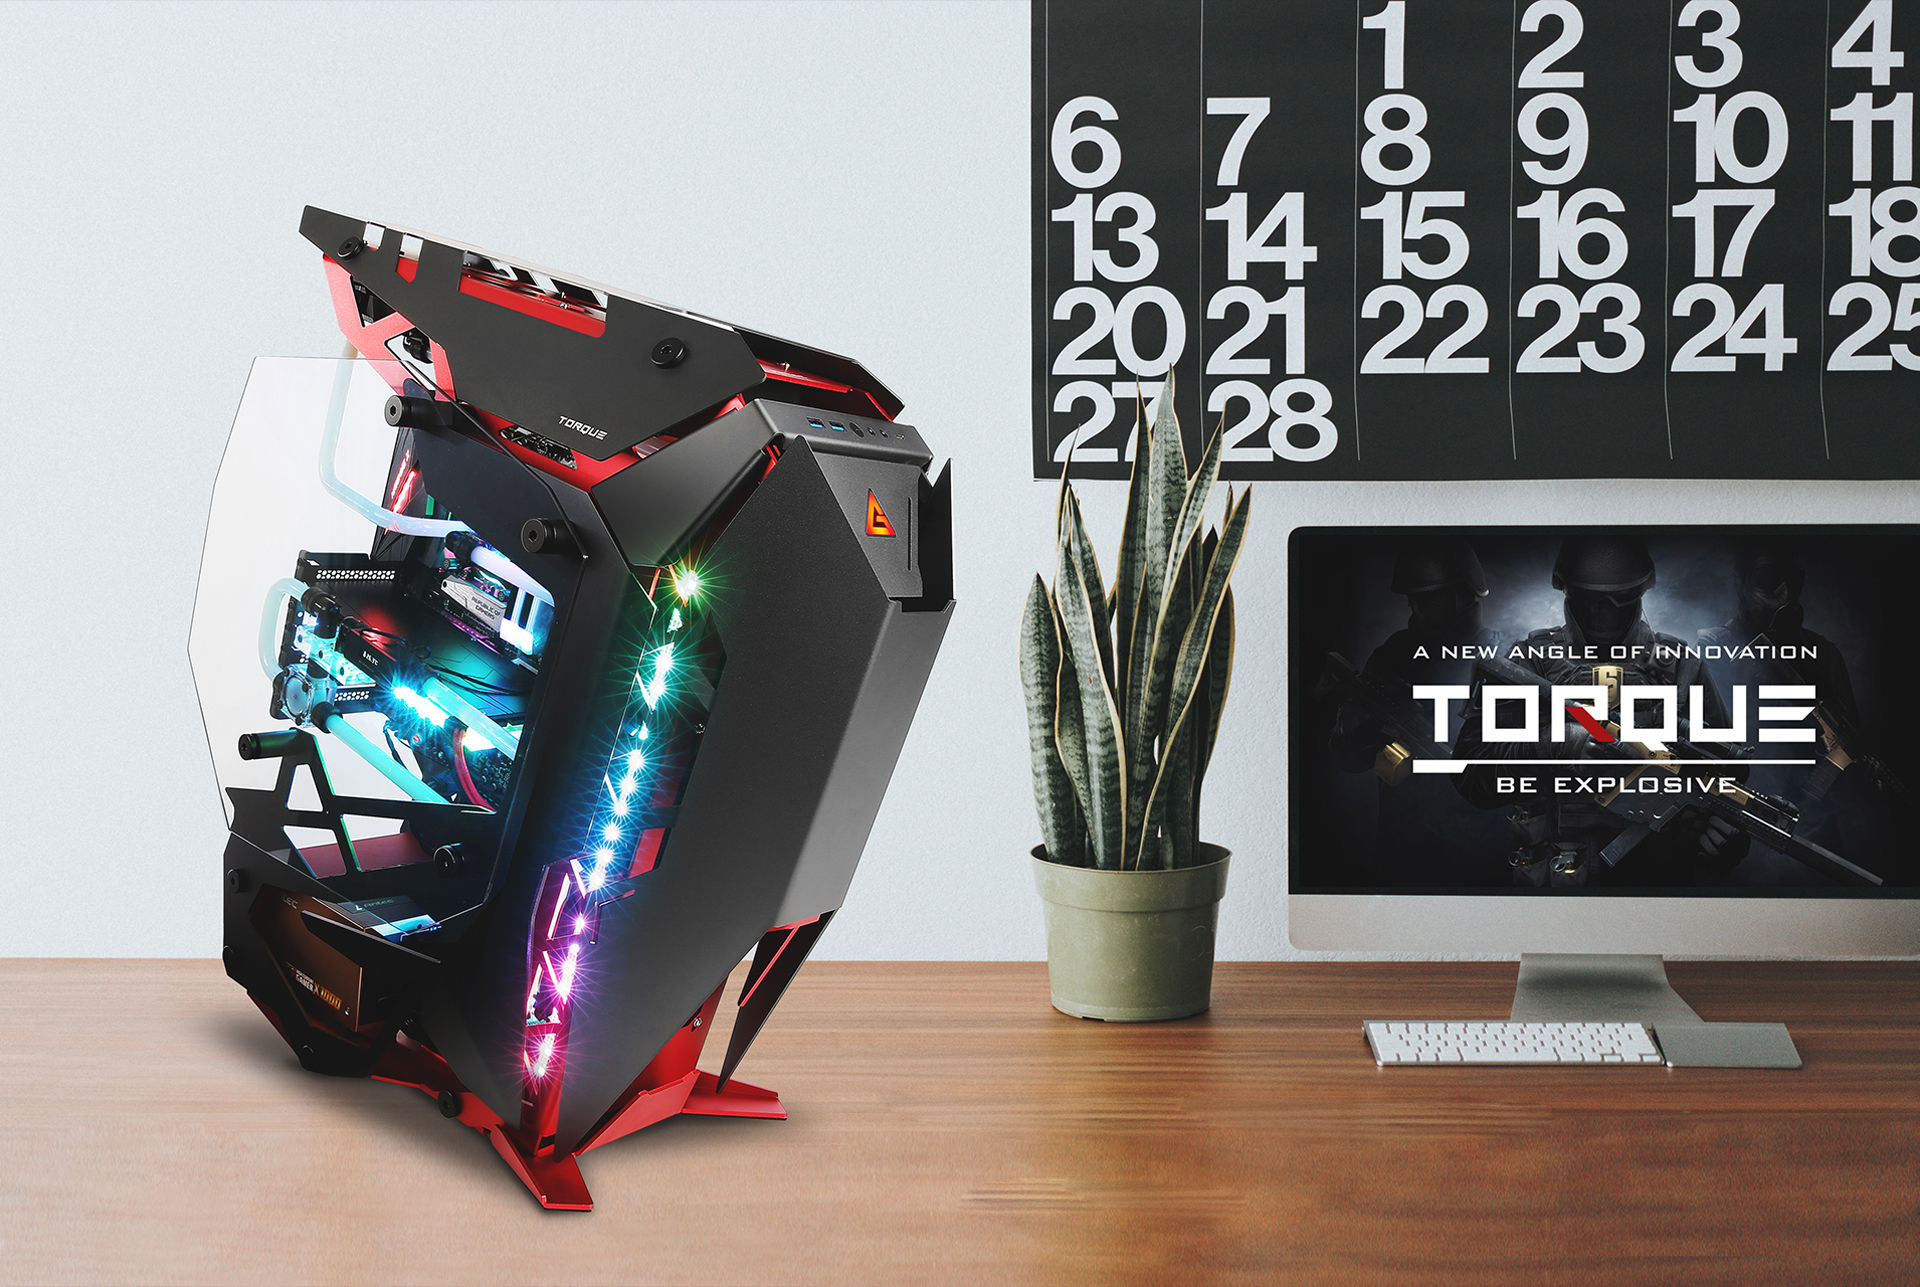 Antec TORQUE On a Wooden Desk With an iMac looking small in the background